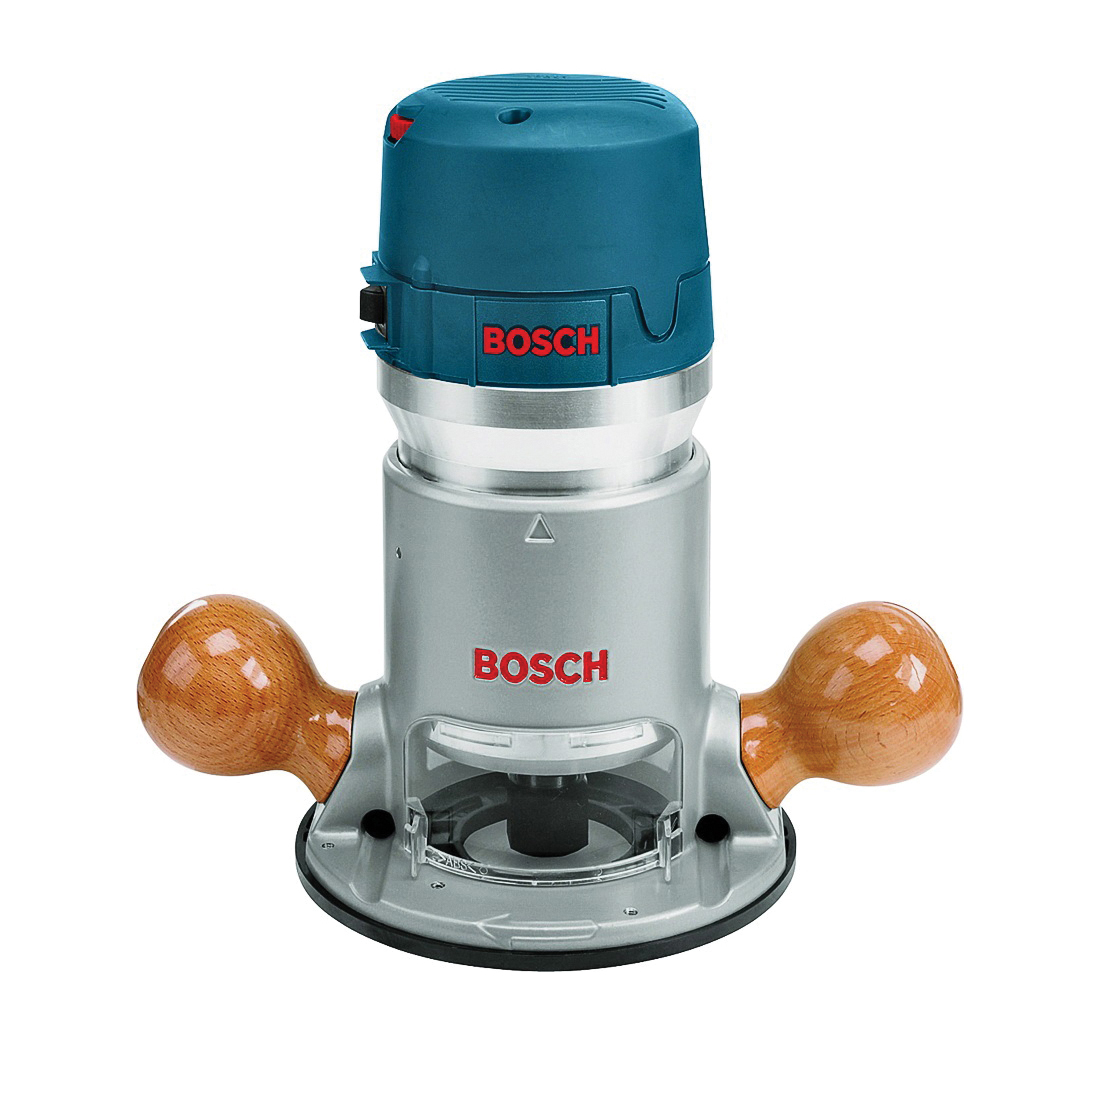 Picture of Bosch 1617EVS Router, 120 V, 12 A, 8000 to 25,000 rpm No Load